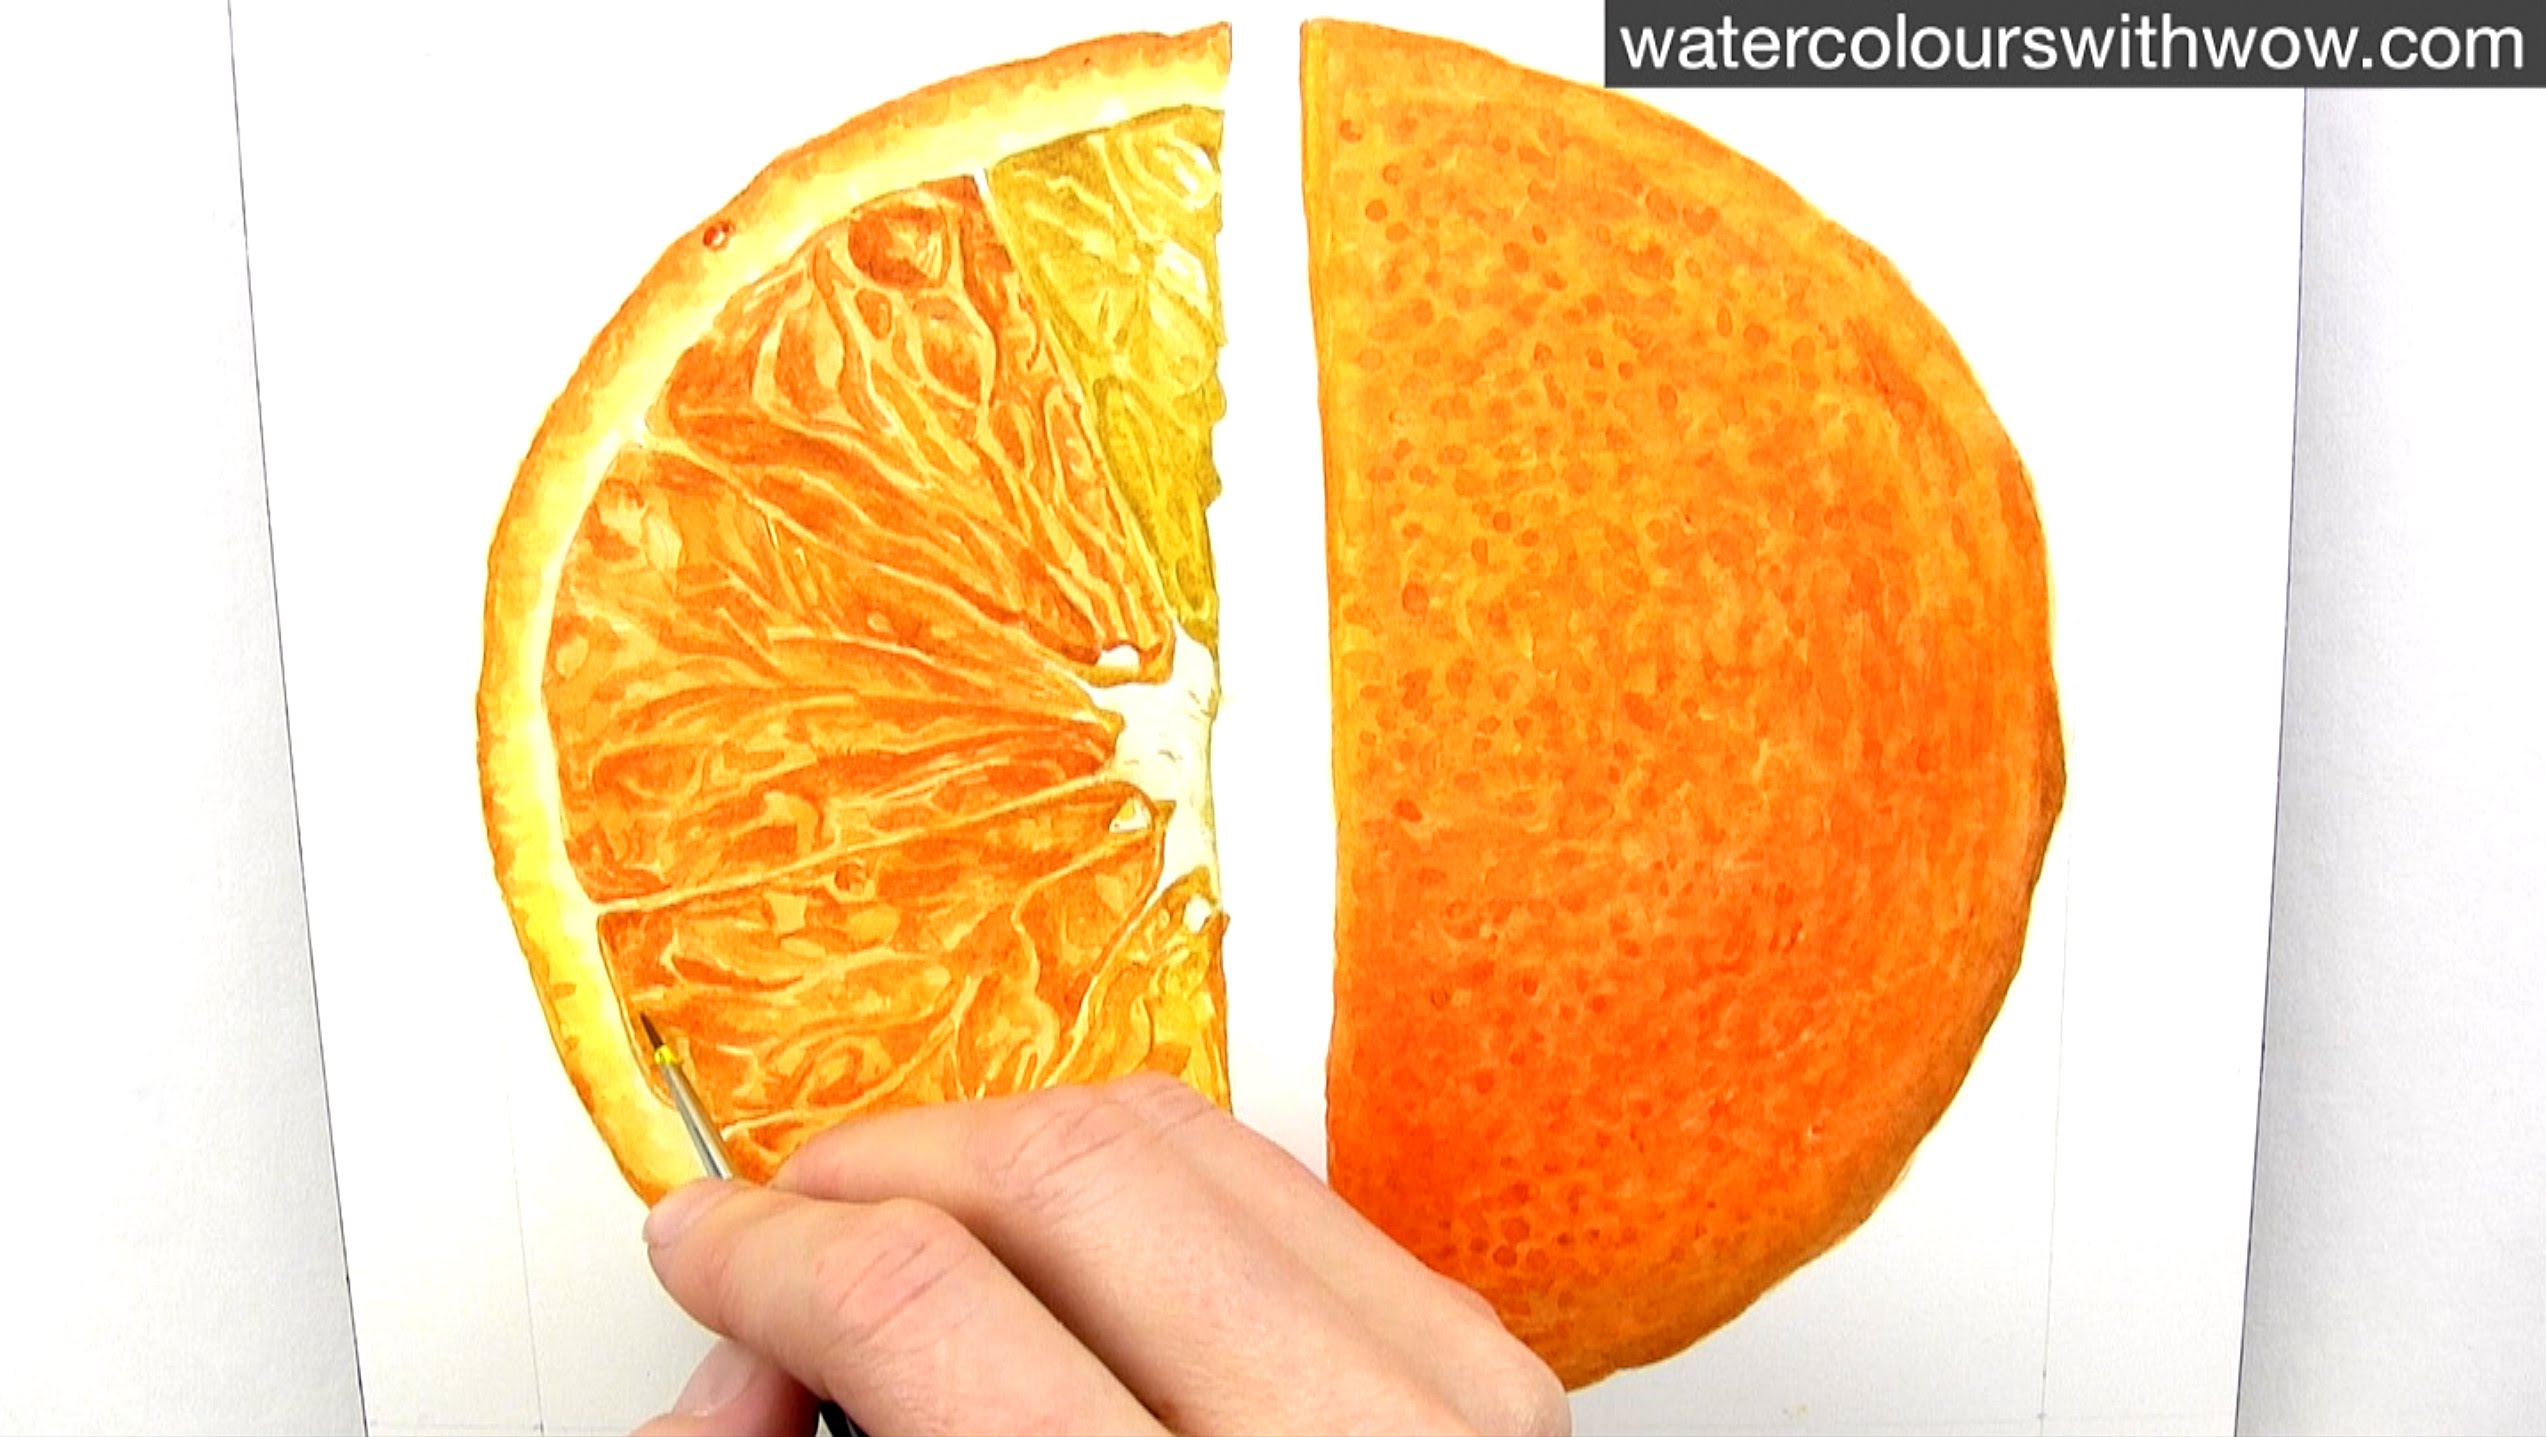 2546x1437 How To Paint A Realistic Juicy Orange Slice In Watercolour